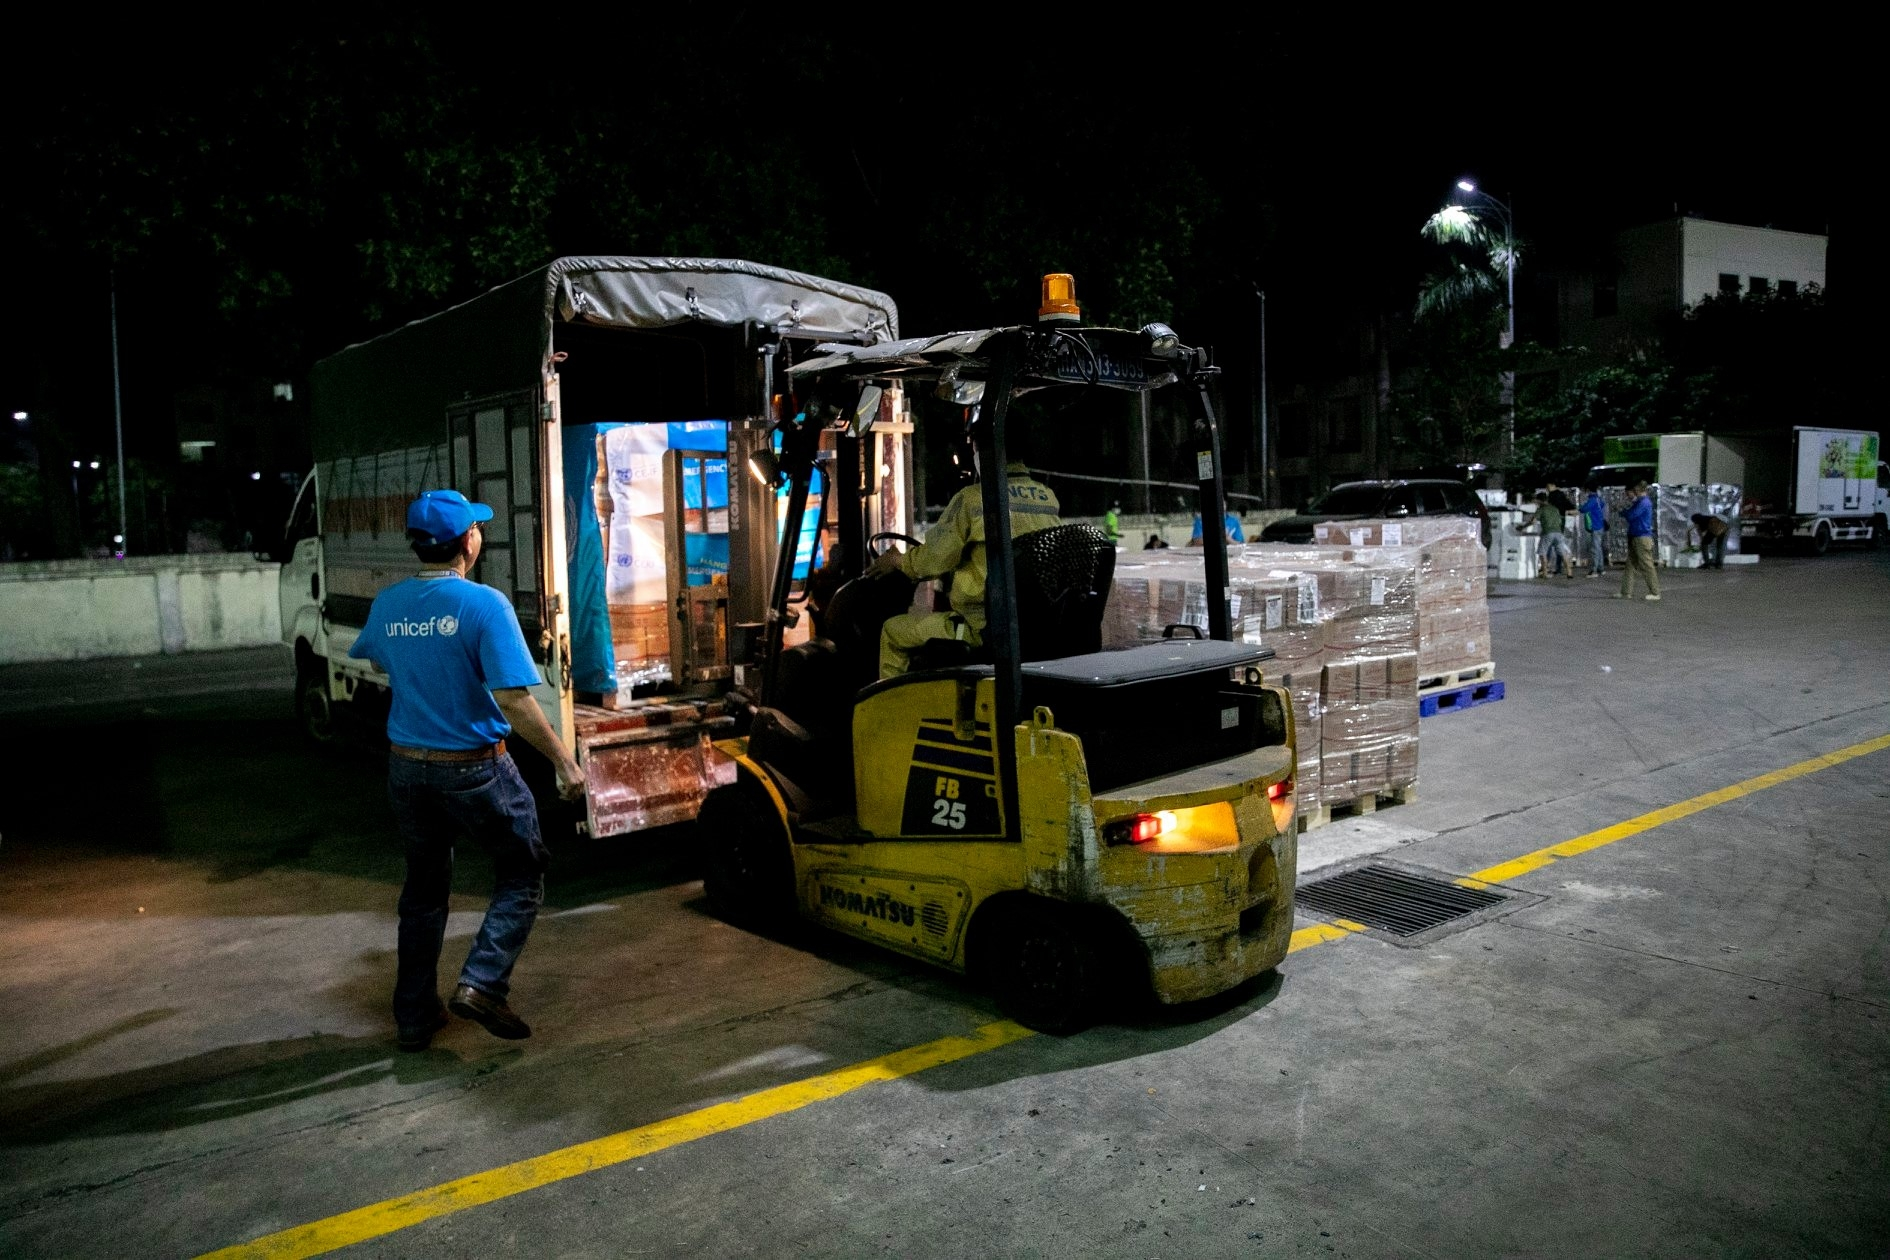 10 tons of therapeutic food for malnourished children ready to distribute central vietnam